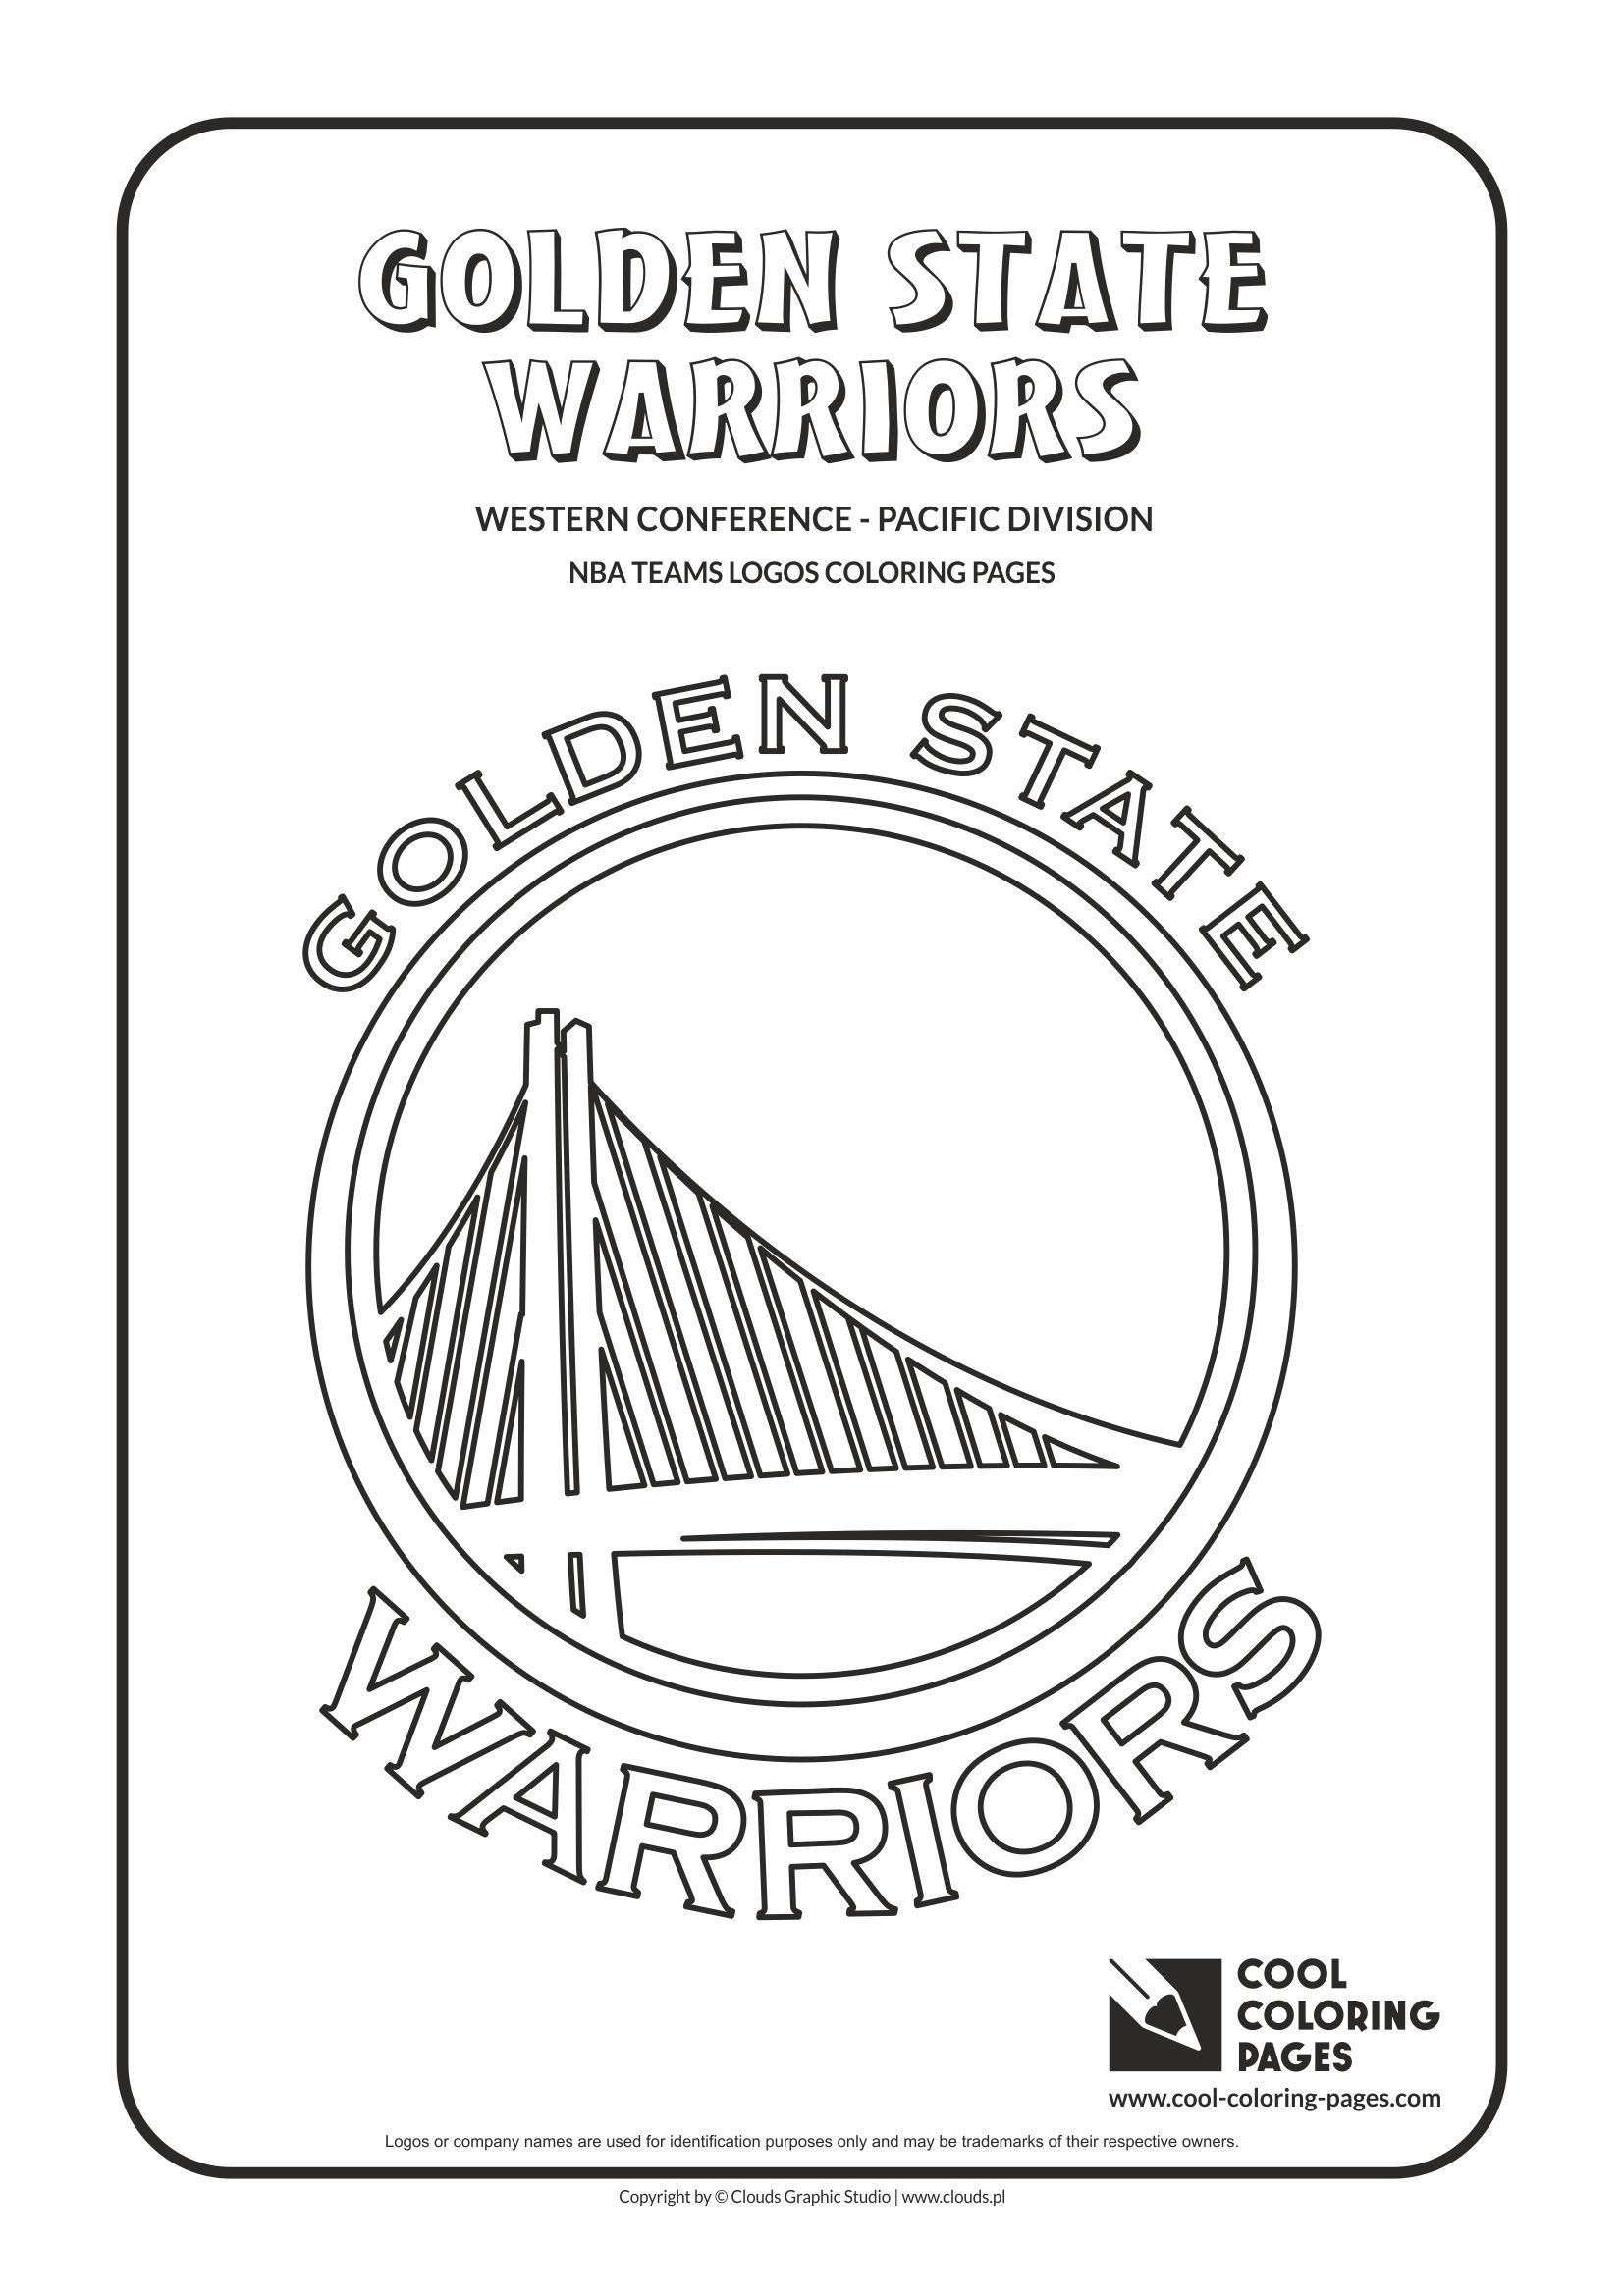 Golden State Warriors Coloring Pages Golden State Warriors Nba Basketball Teams Logos Co In 2020 Golden State Warriors Cool Coloring Pages Golden State Warriors Colors